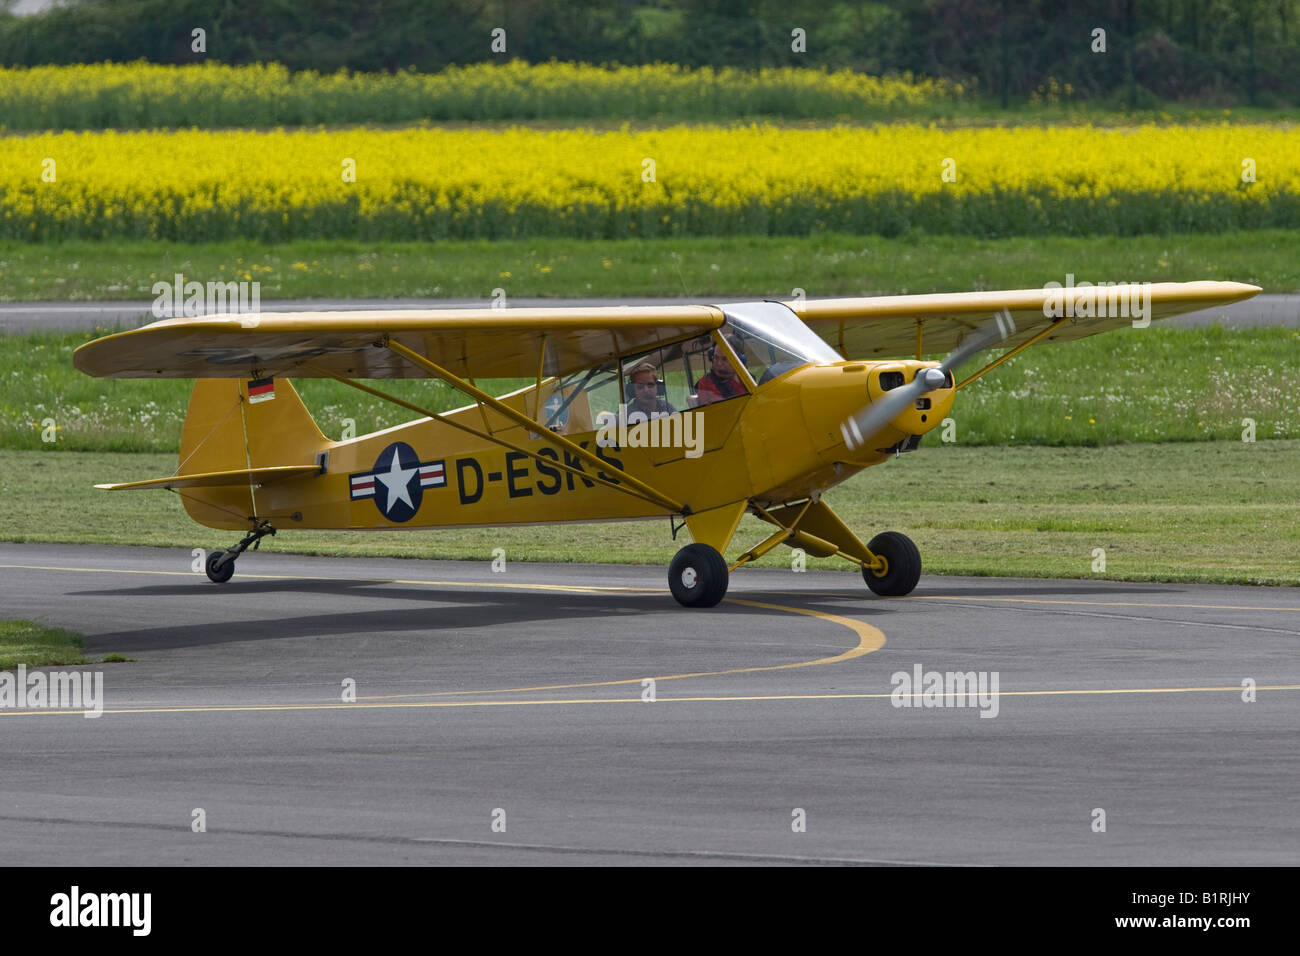 Small, single-engined sports plane taxiing on the runway of Egelsbach Airport, Hesse, Germany, Europe - Stock Image